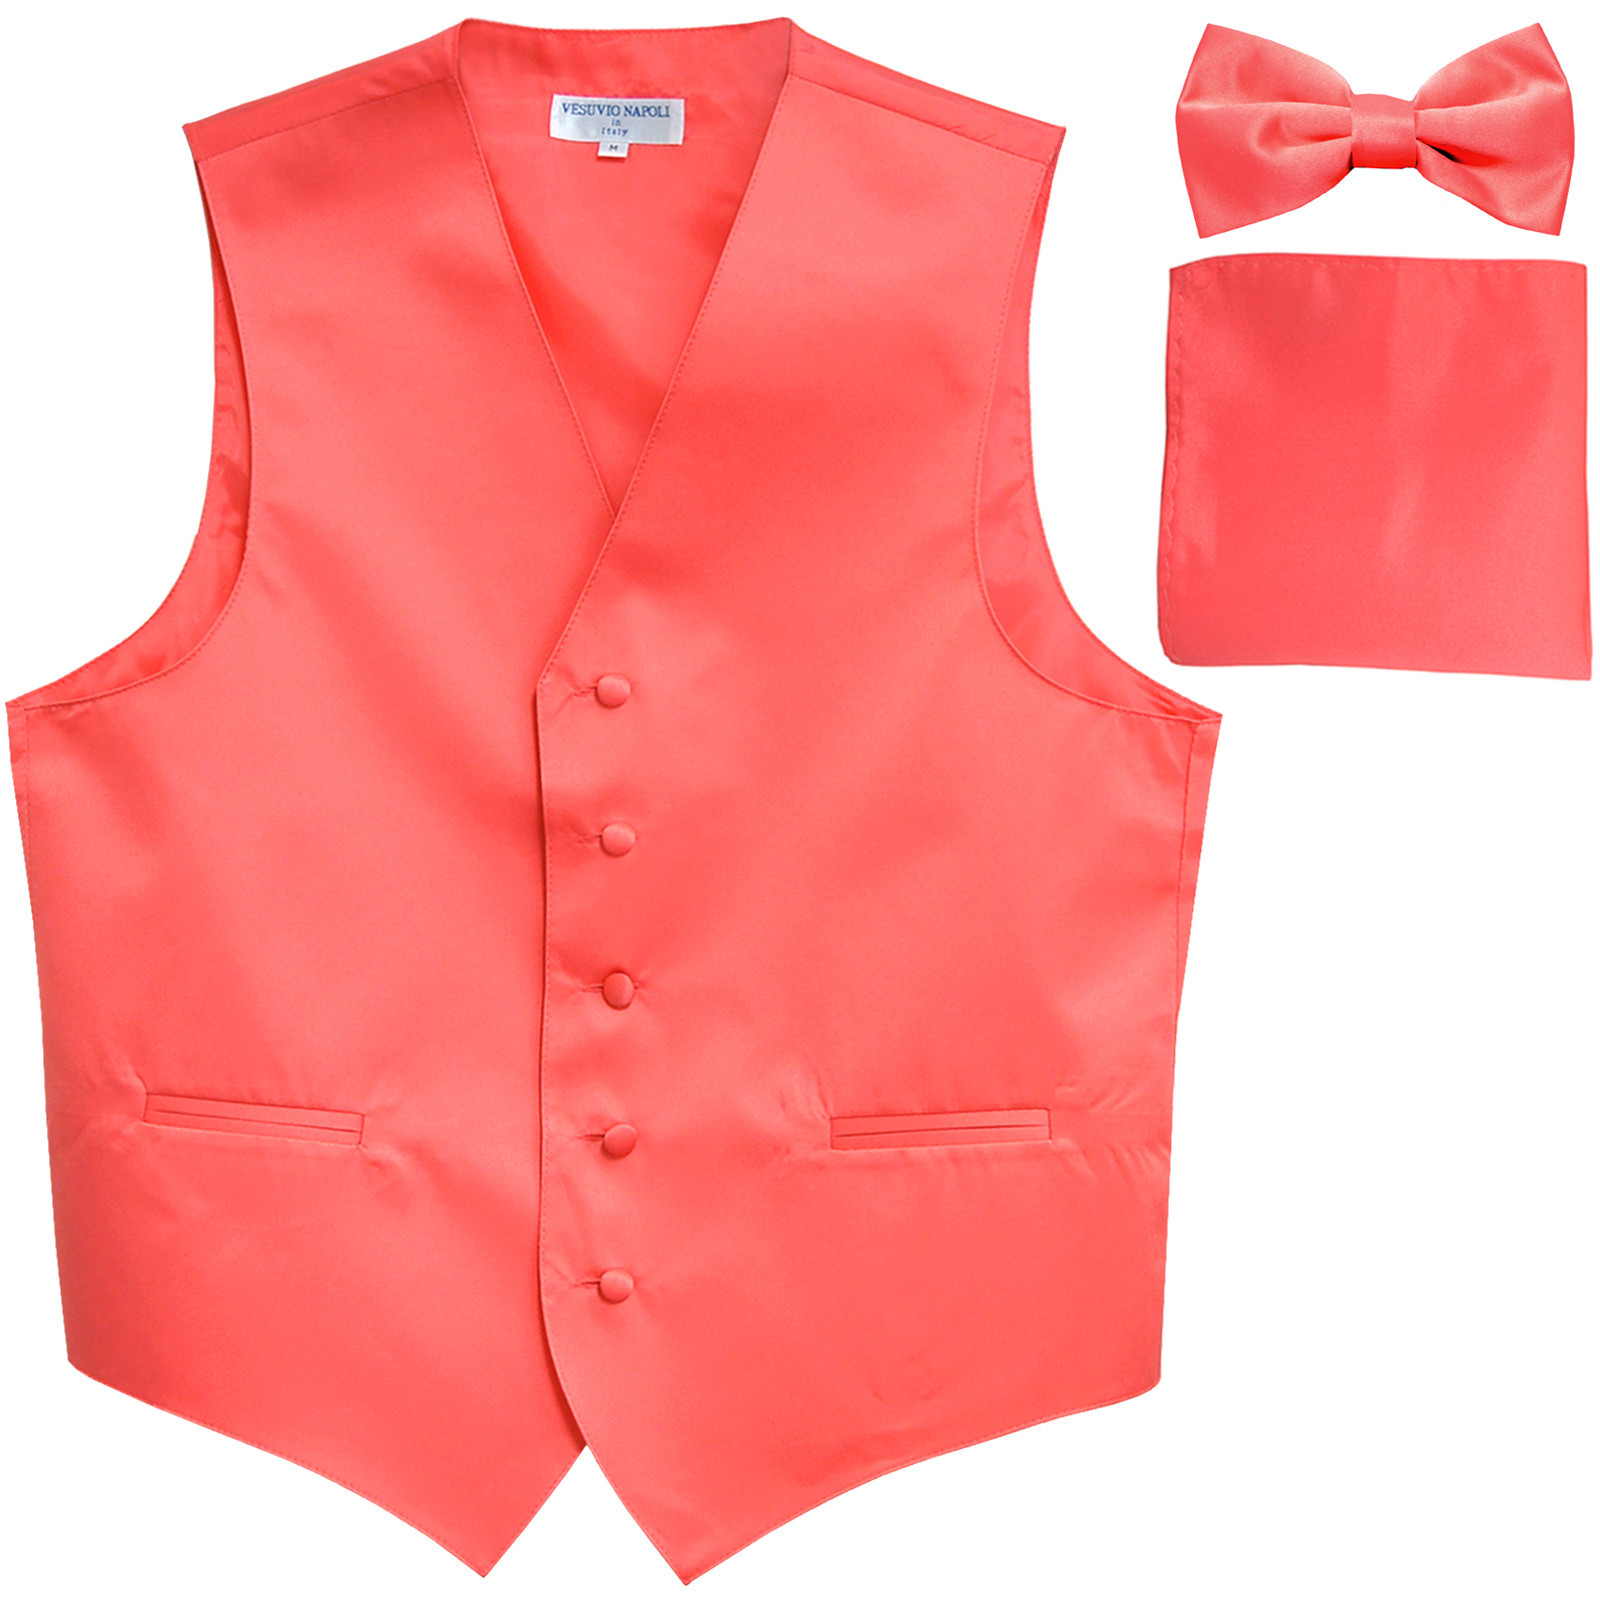 New Men's formal vest Tuxedo Waistcoat_bowtie & hankie set wedding prom coral